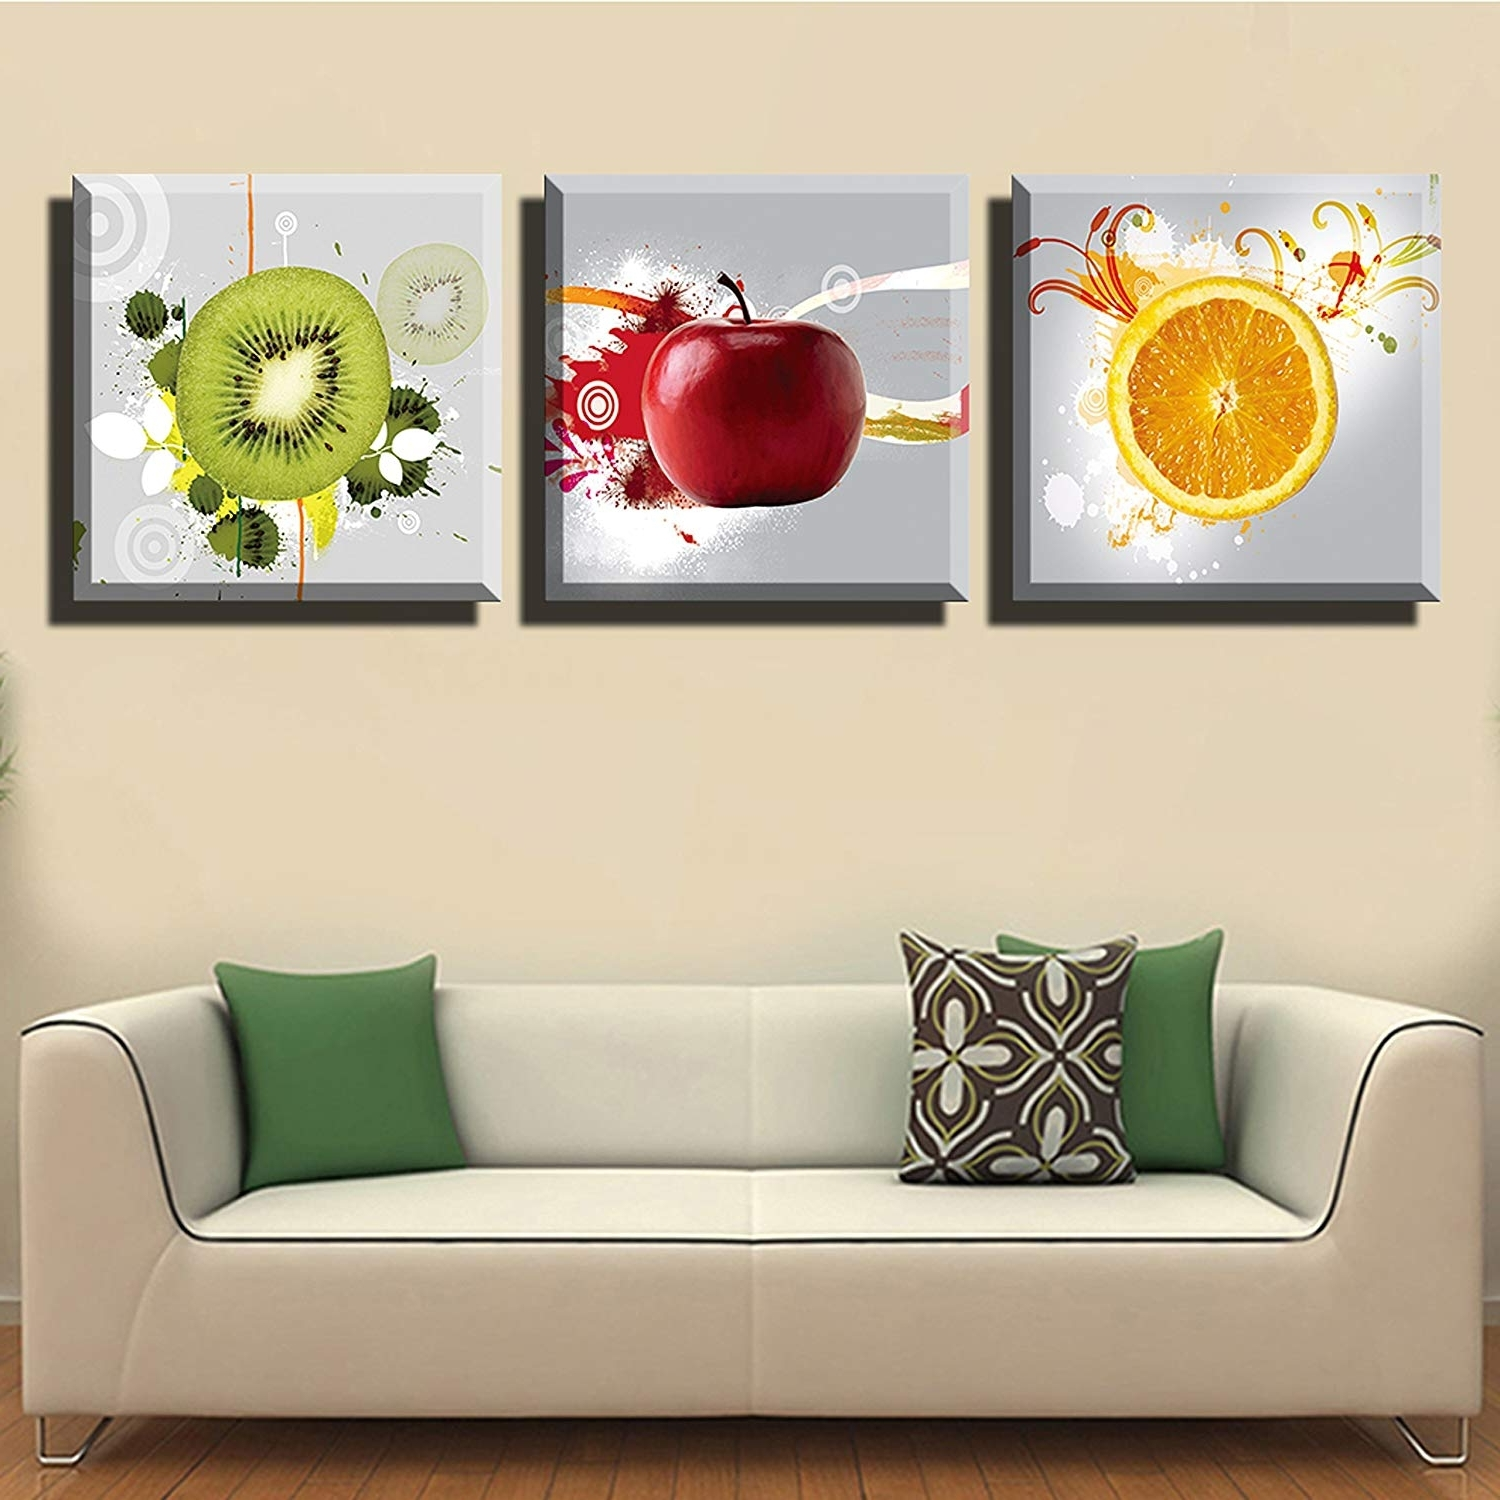 Wall Art Prints Throughout Well Known Amazon: Lyglo Canvas Prints – Bright And Vibrant Fruit Canvas (View 13 of 15)